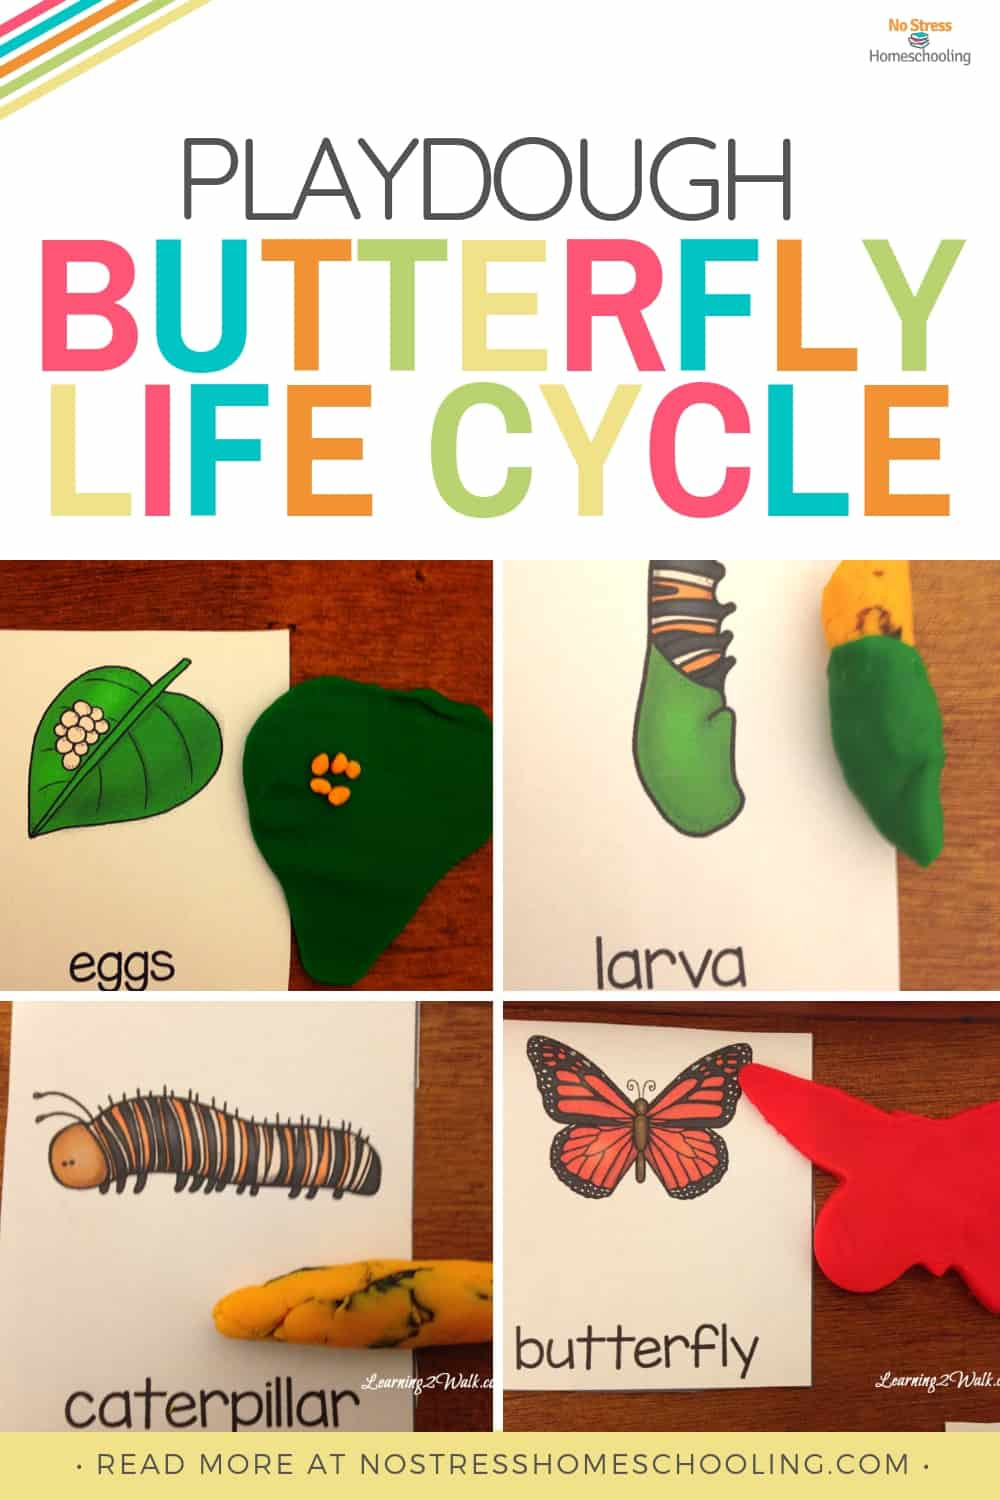 Butterfly Life Cycle Worksheet 2 Playdough Kindergarten butterfly Life Cycle Activities